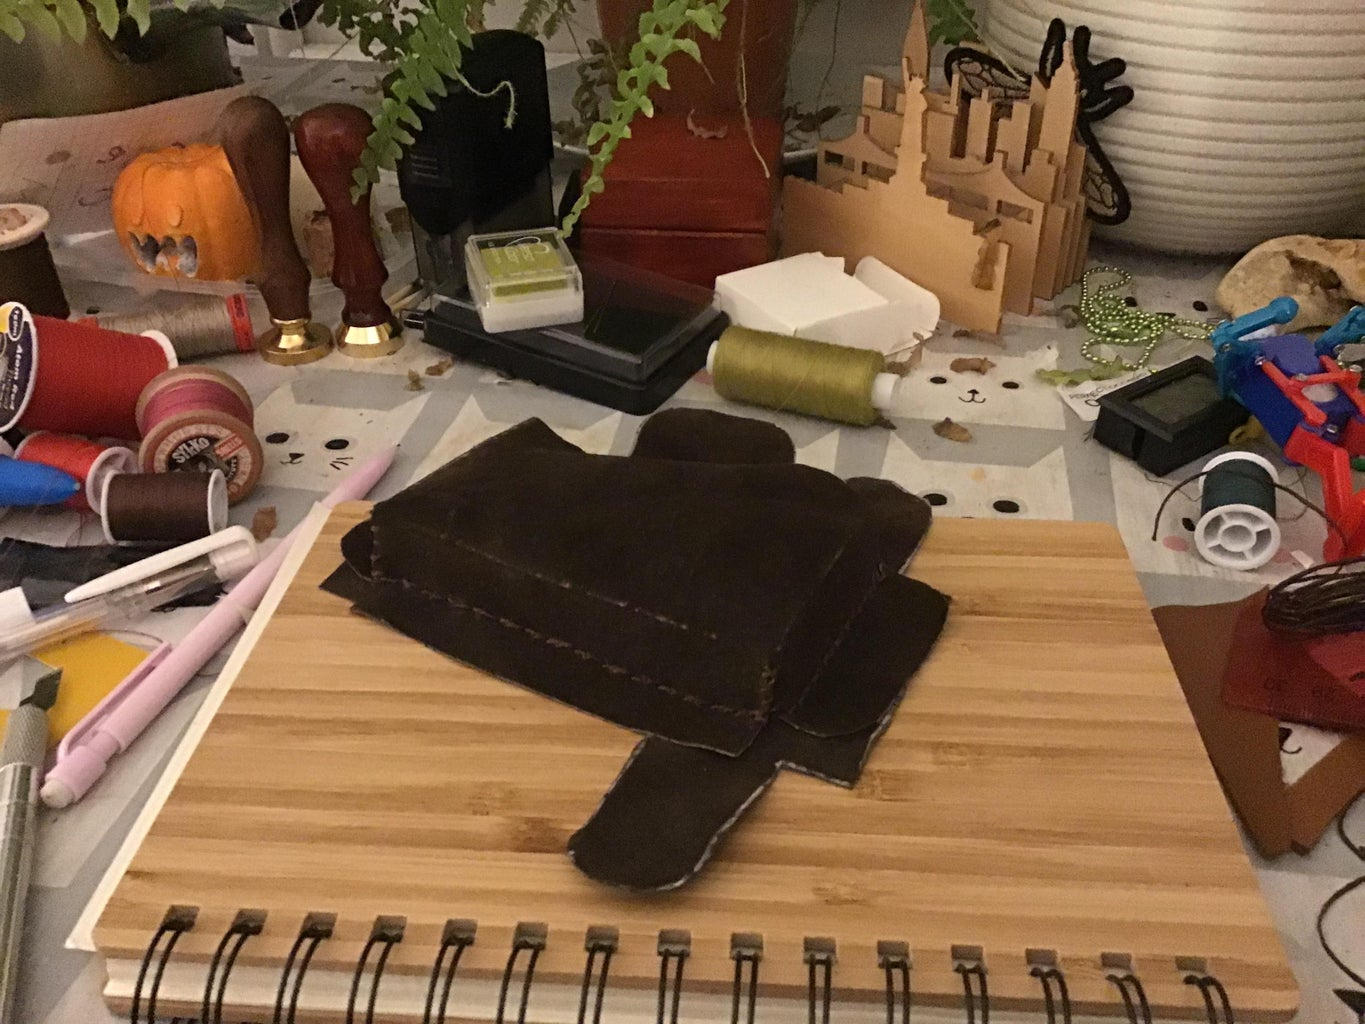 Sew Together Pieces